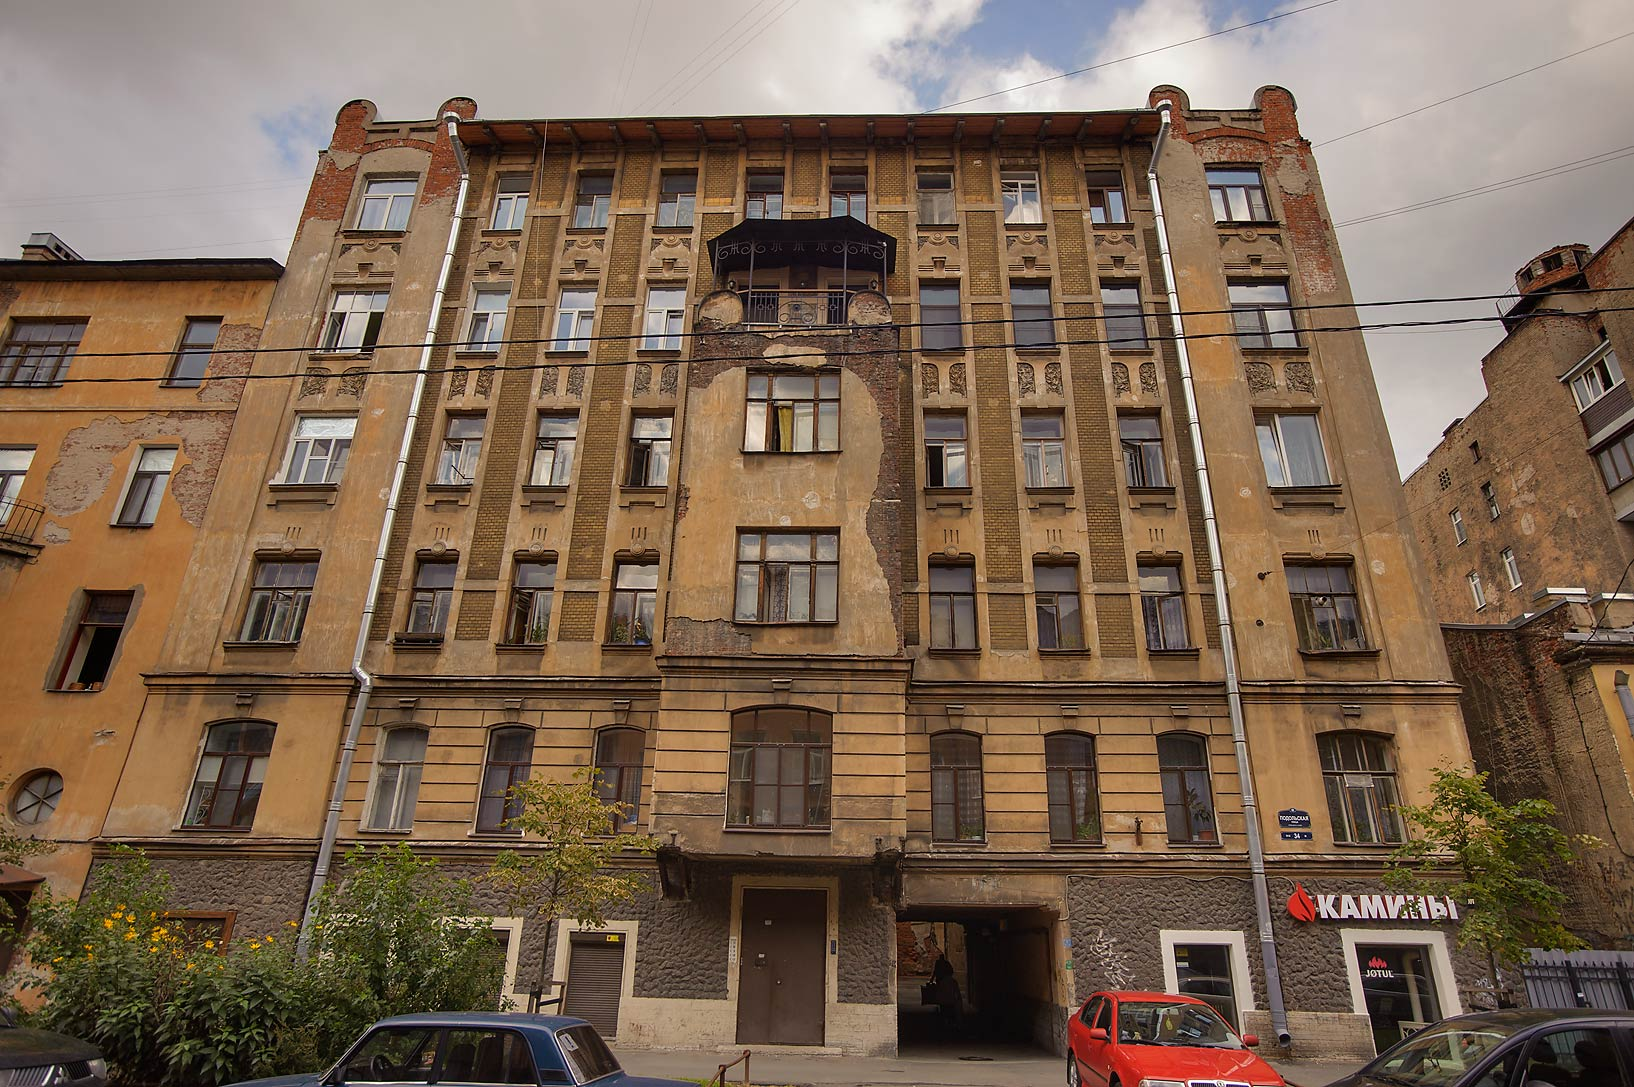 photo 1252 02 p f panteleev apartment house 1903 at 34 train station petersburg russia. Black Bedroom Furniture Sets. Home Design Ideas